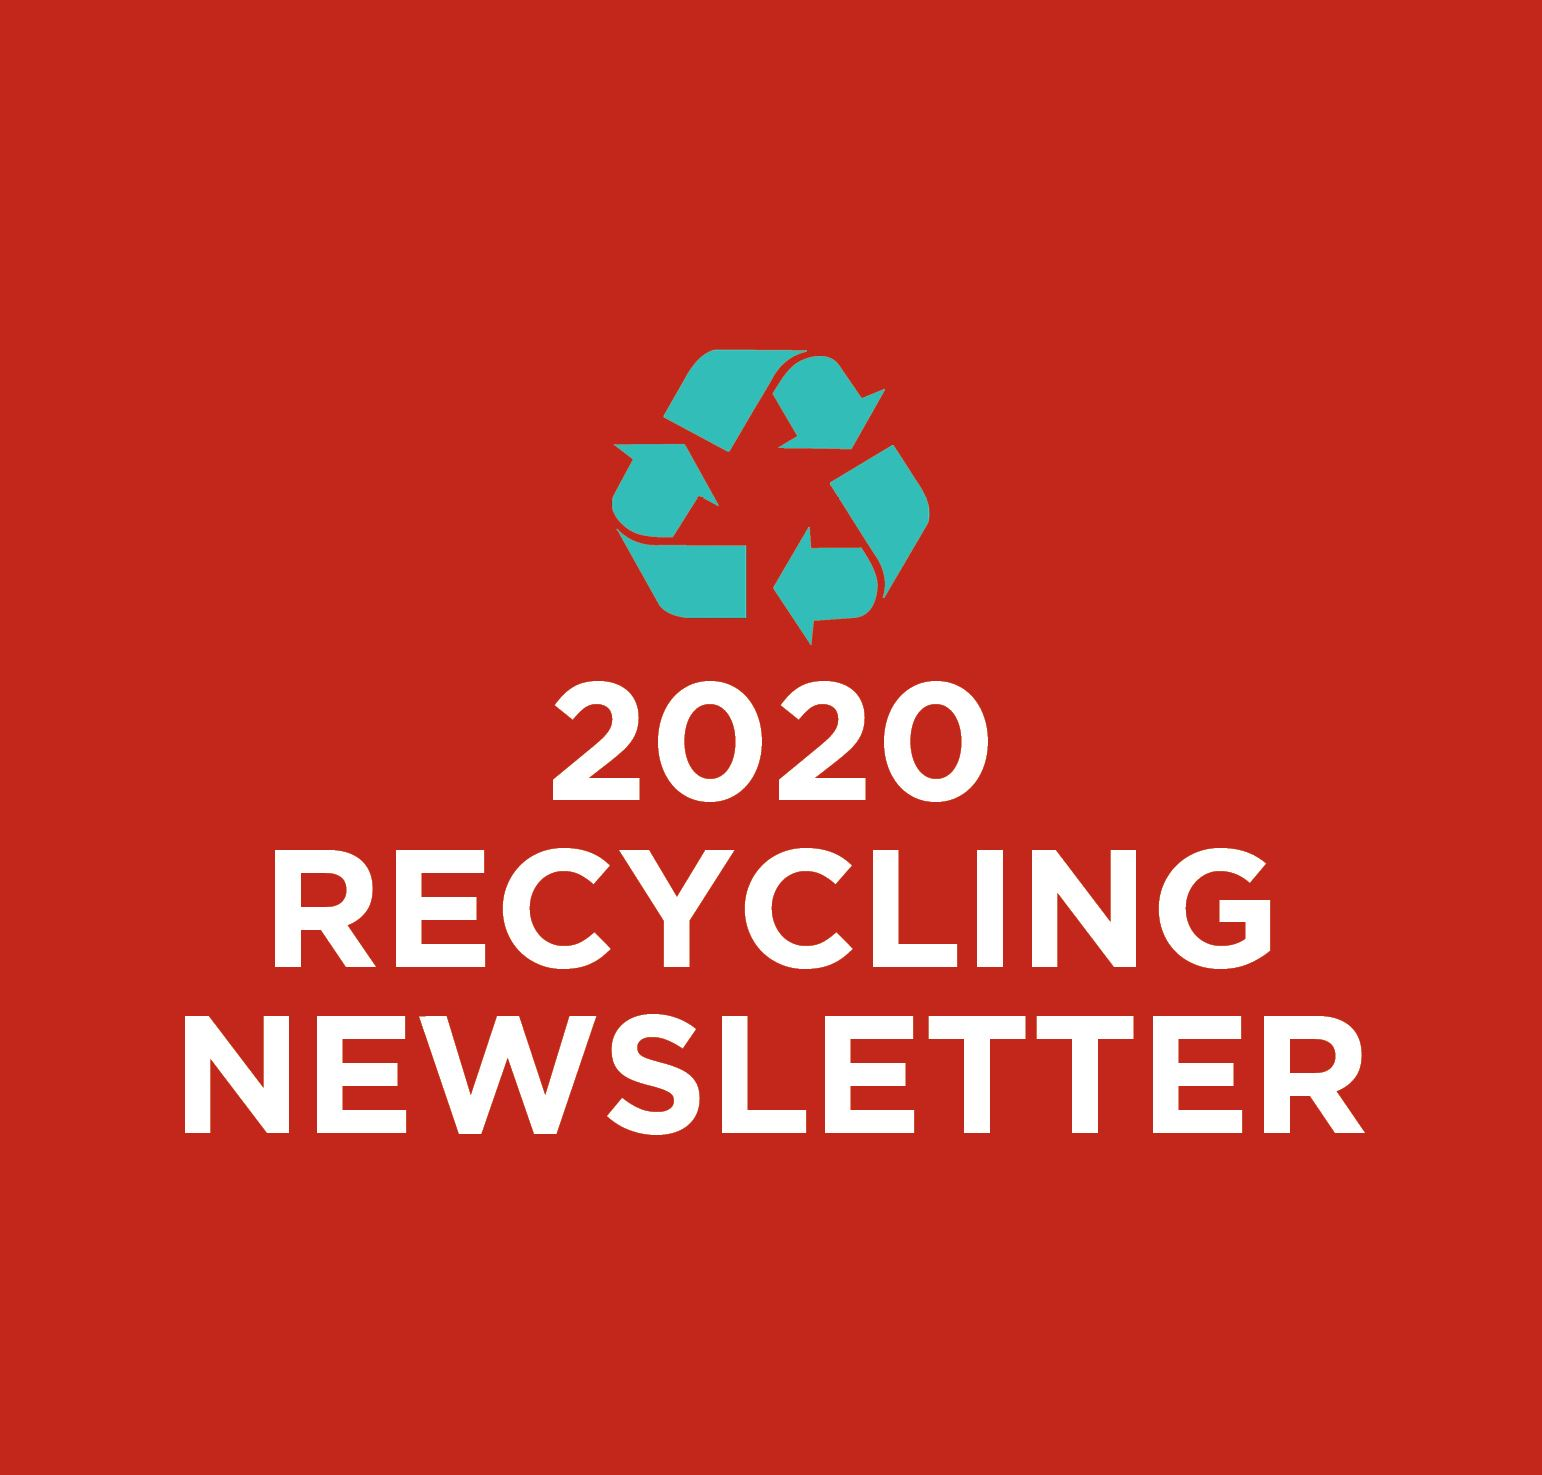 Recycle Newsletter